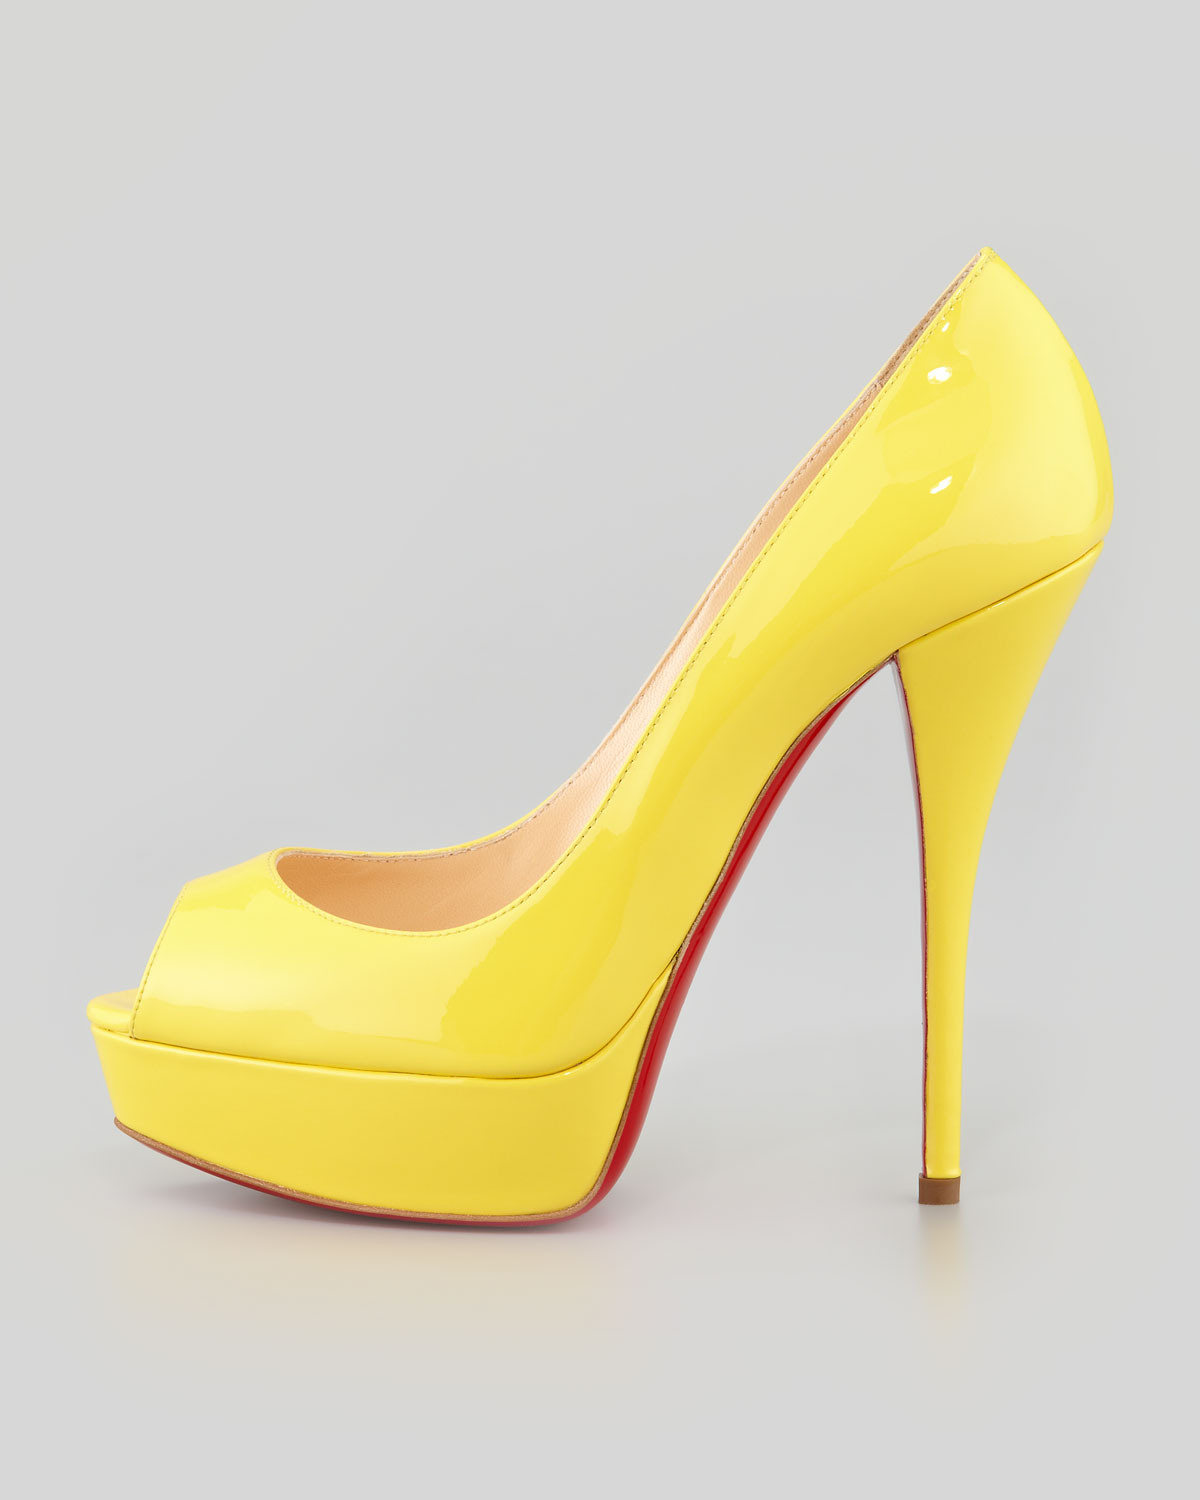 9c82f0ae1cf Christian Louboutin Yellow Troca Patent Red Sole Platform Pump